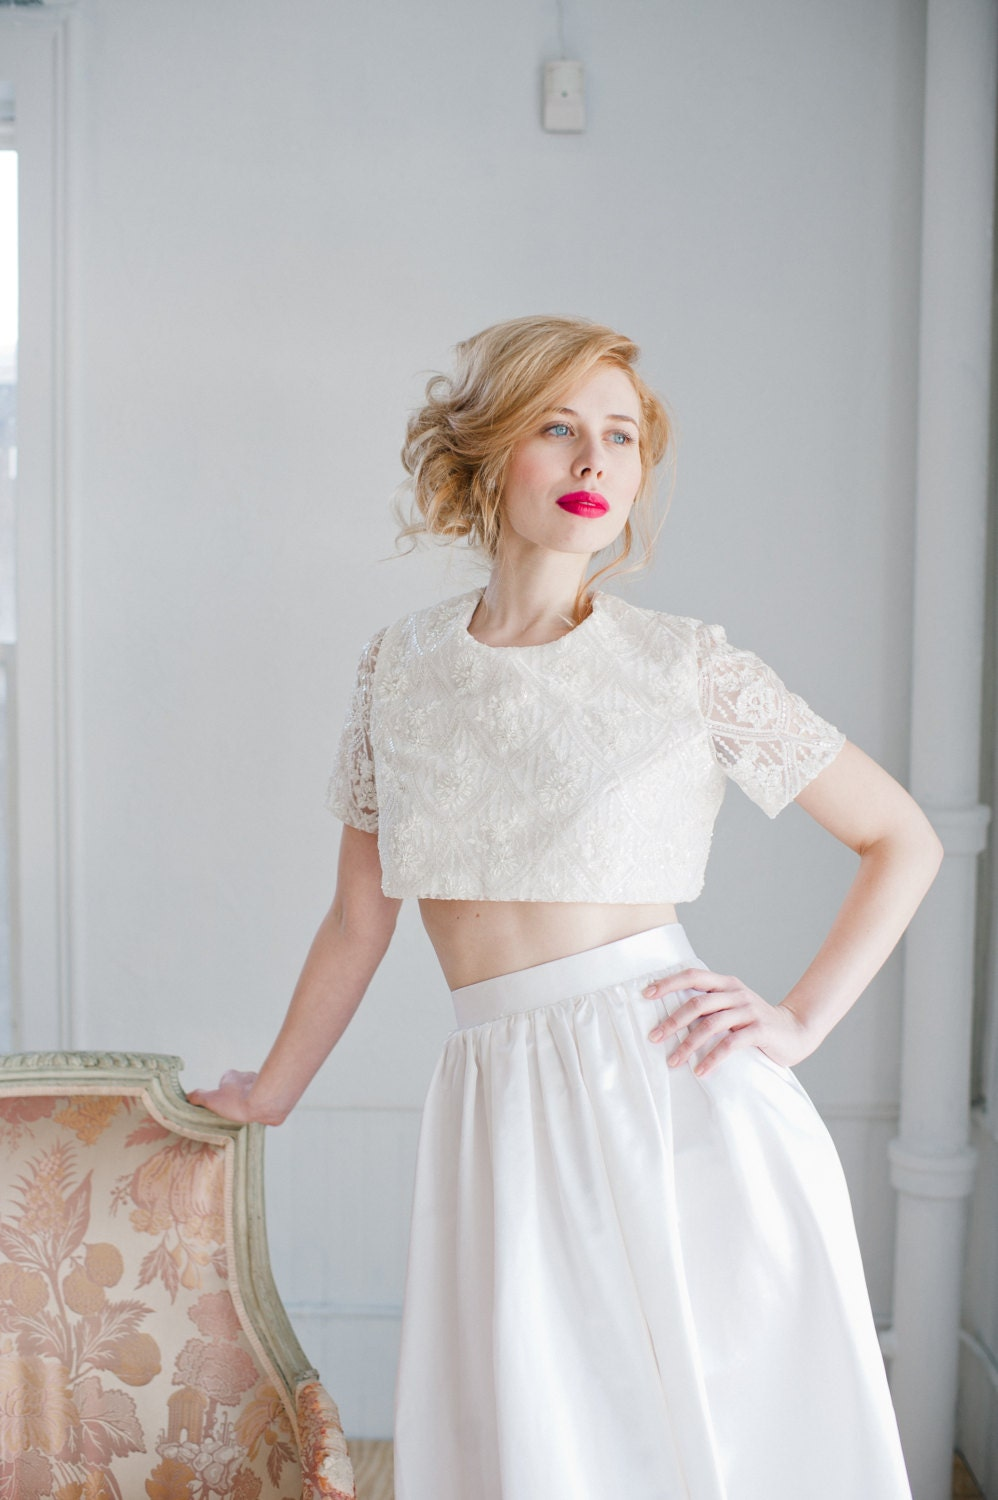 Opal beaded lace crop top wedding dress handmade wedding for Crop top wedding dress